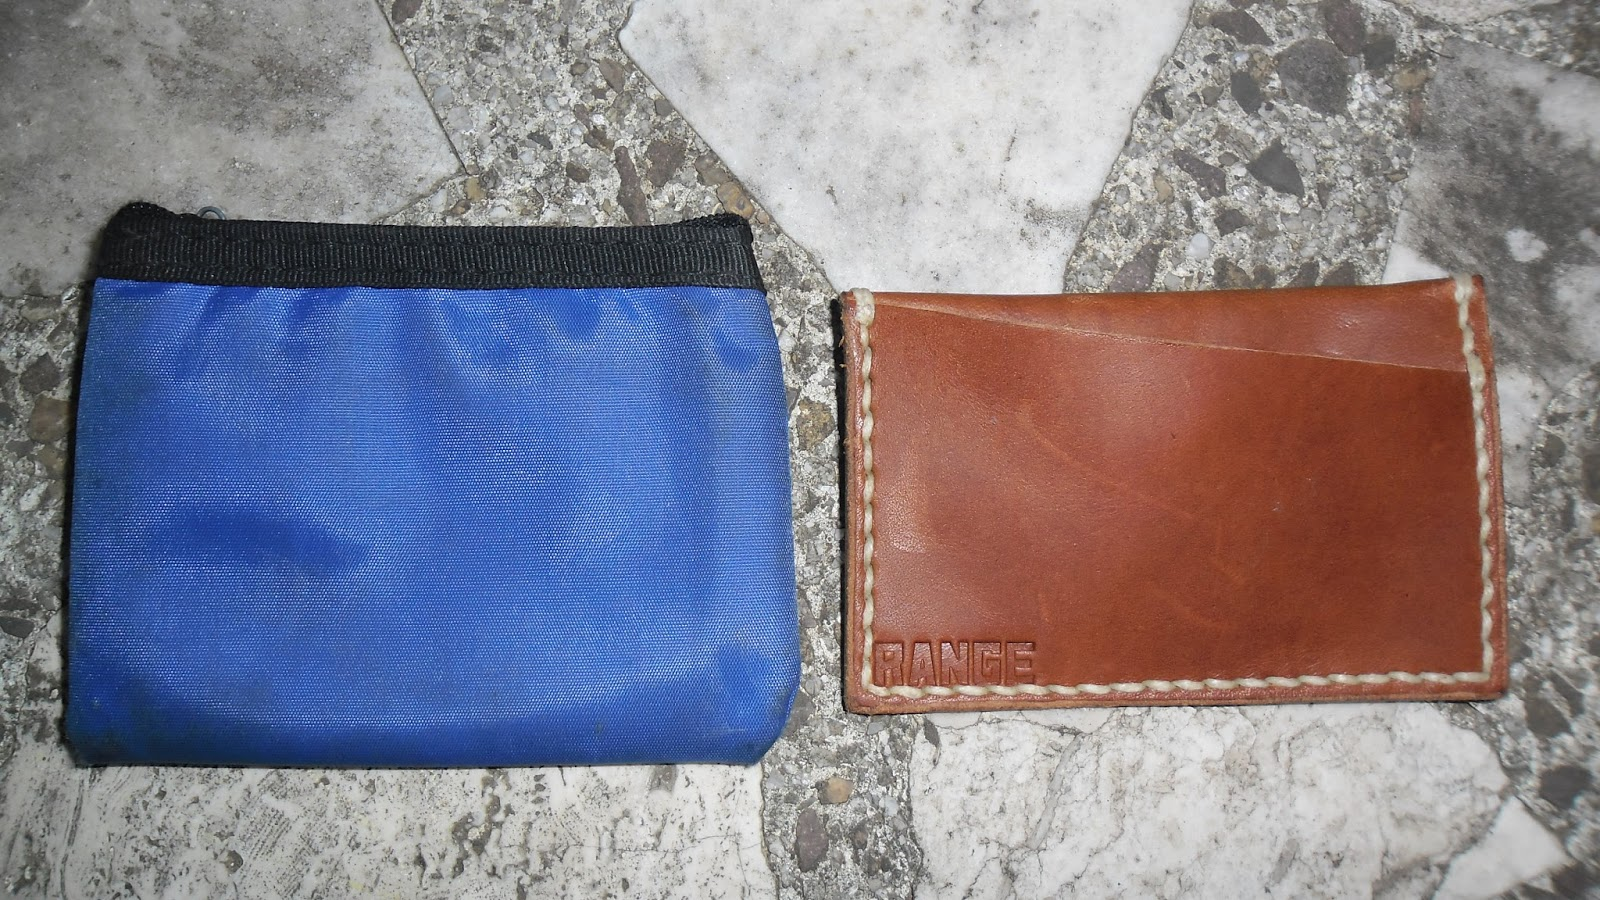 Perfect Gentleman: Brands: RANGE Minimalist Card Holder